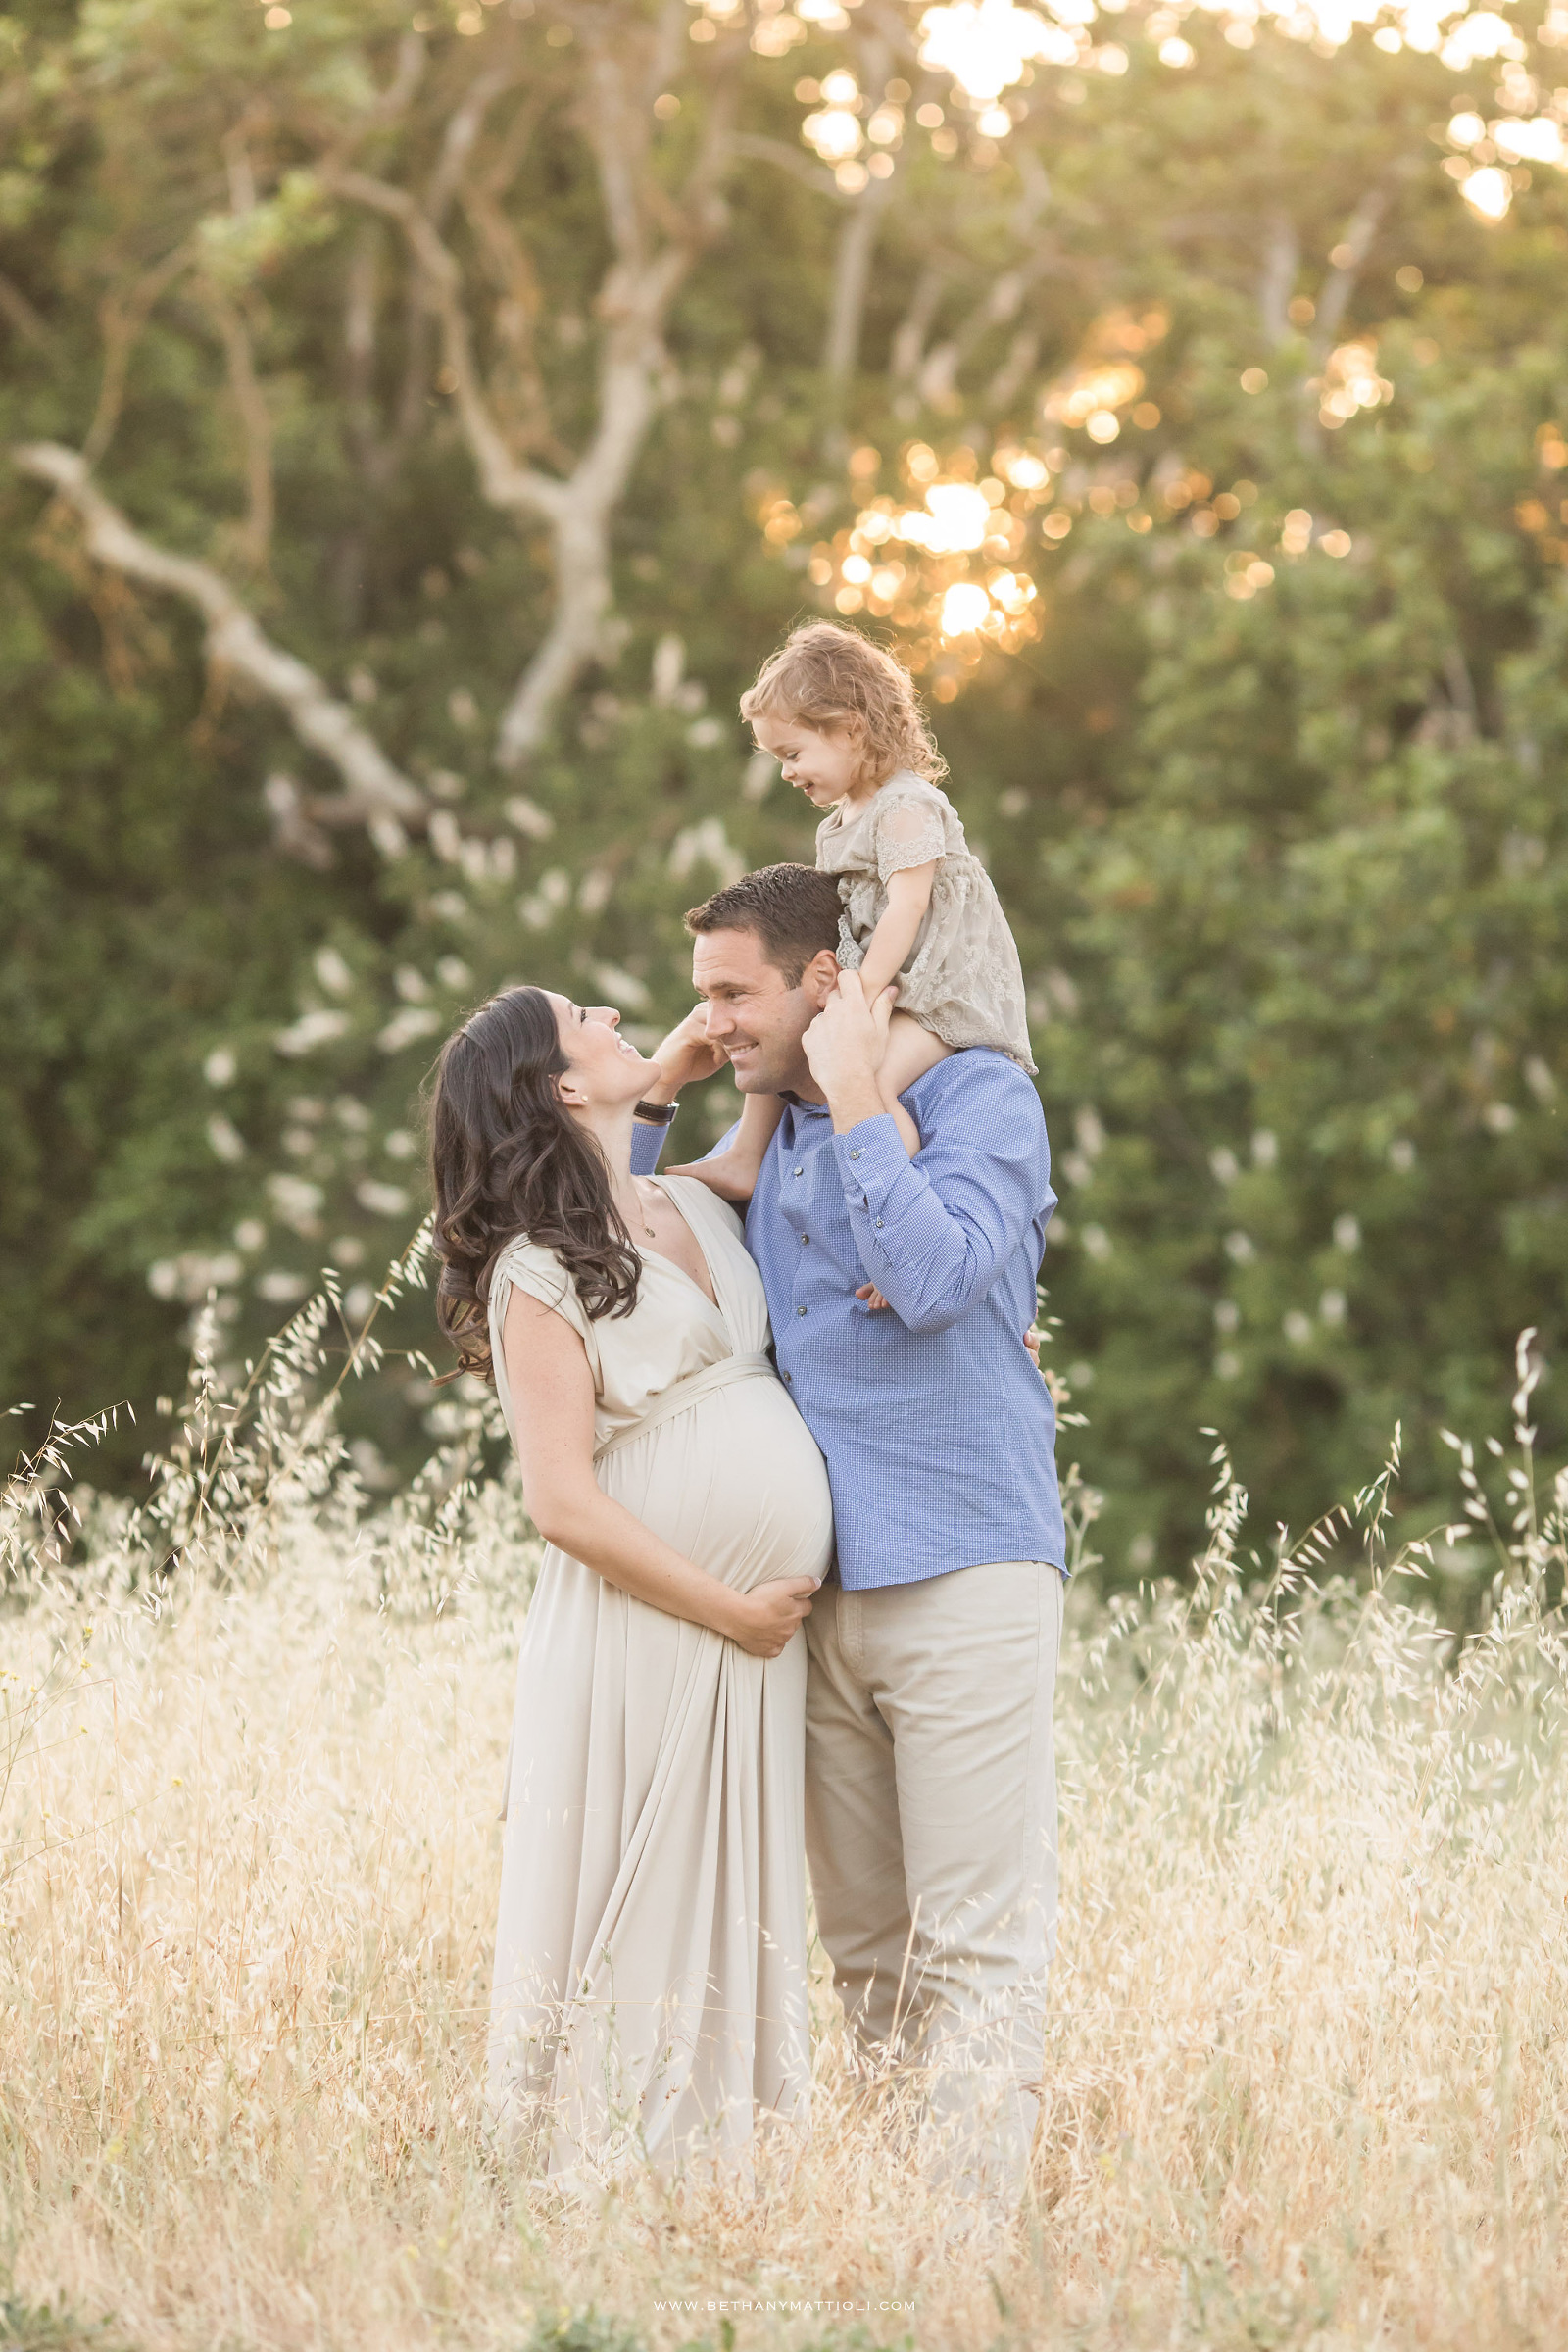 Bay Area Family Maternity Photographer   One More to Love